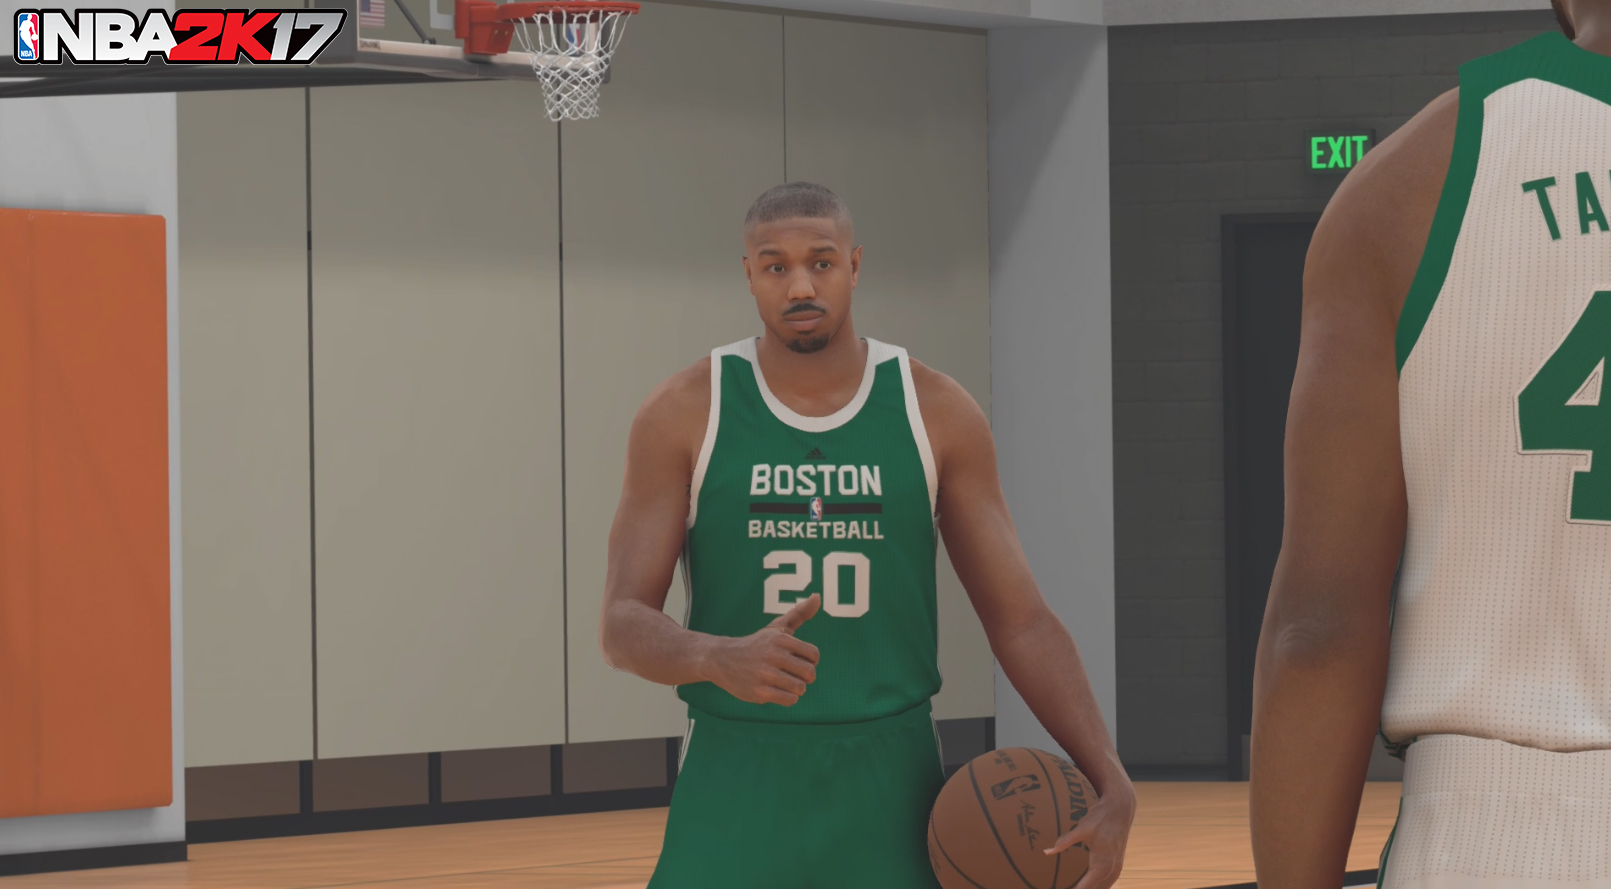 NBA 2K17 : l'acteur Michael B. Jordan en star du mode